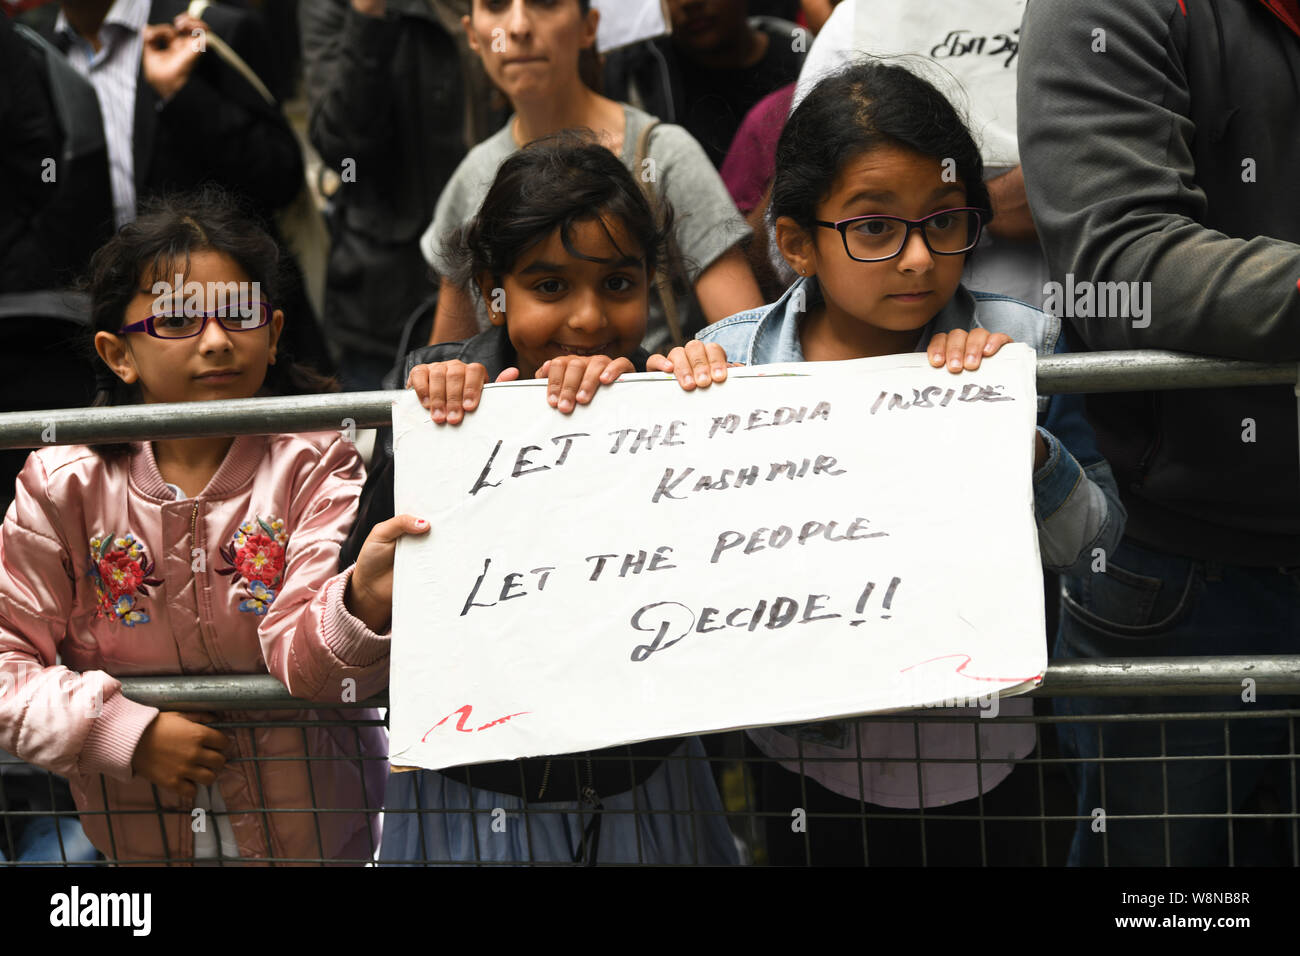 London, UK. 10th Aug, 2019. Hundreds Kashmiris protest India terrorists and Indian army occupation revoke article 370 and 35A. The same language Israel apartheid in Palestine outside India Embassy London, How can a human being do harm to this beautiful children? on 20 August 2019, UK. Credit: Picture Capital/Alamy Live News Stock Photo